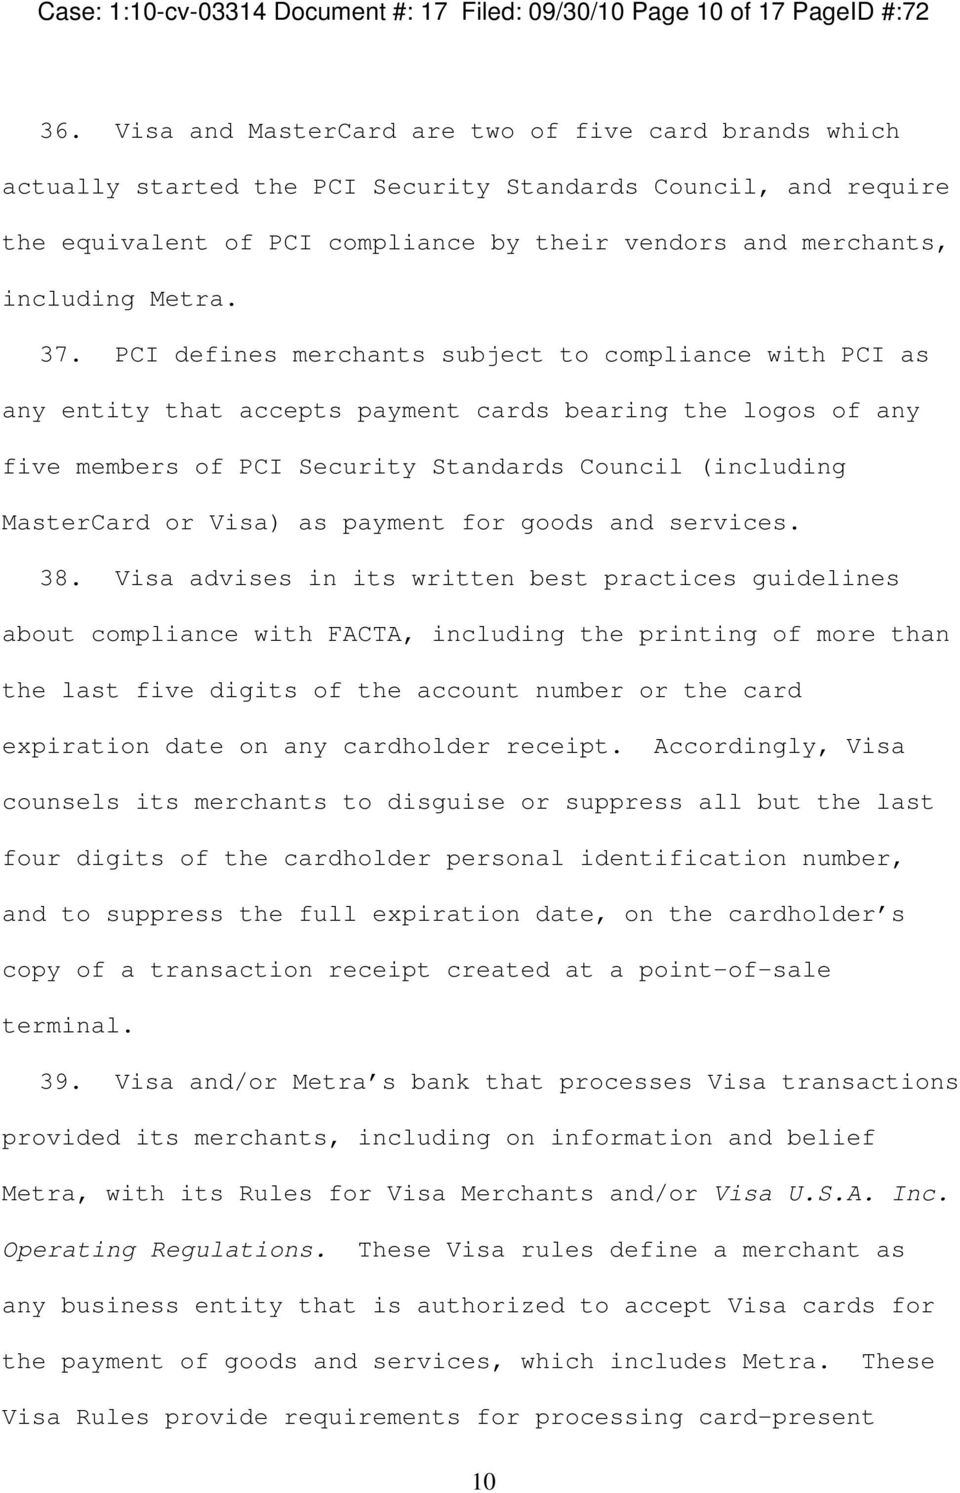 37. PCI defines merchants subject to compliance with PCI as any entity that accepts payment cards bearing the logos of any five members of PCI Security Standards Council (including MasterCard or